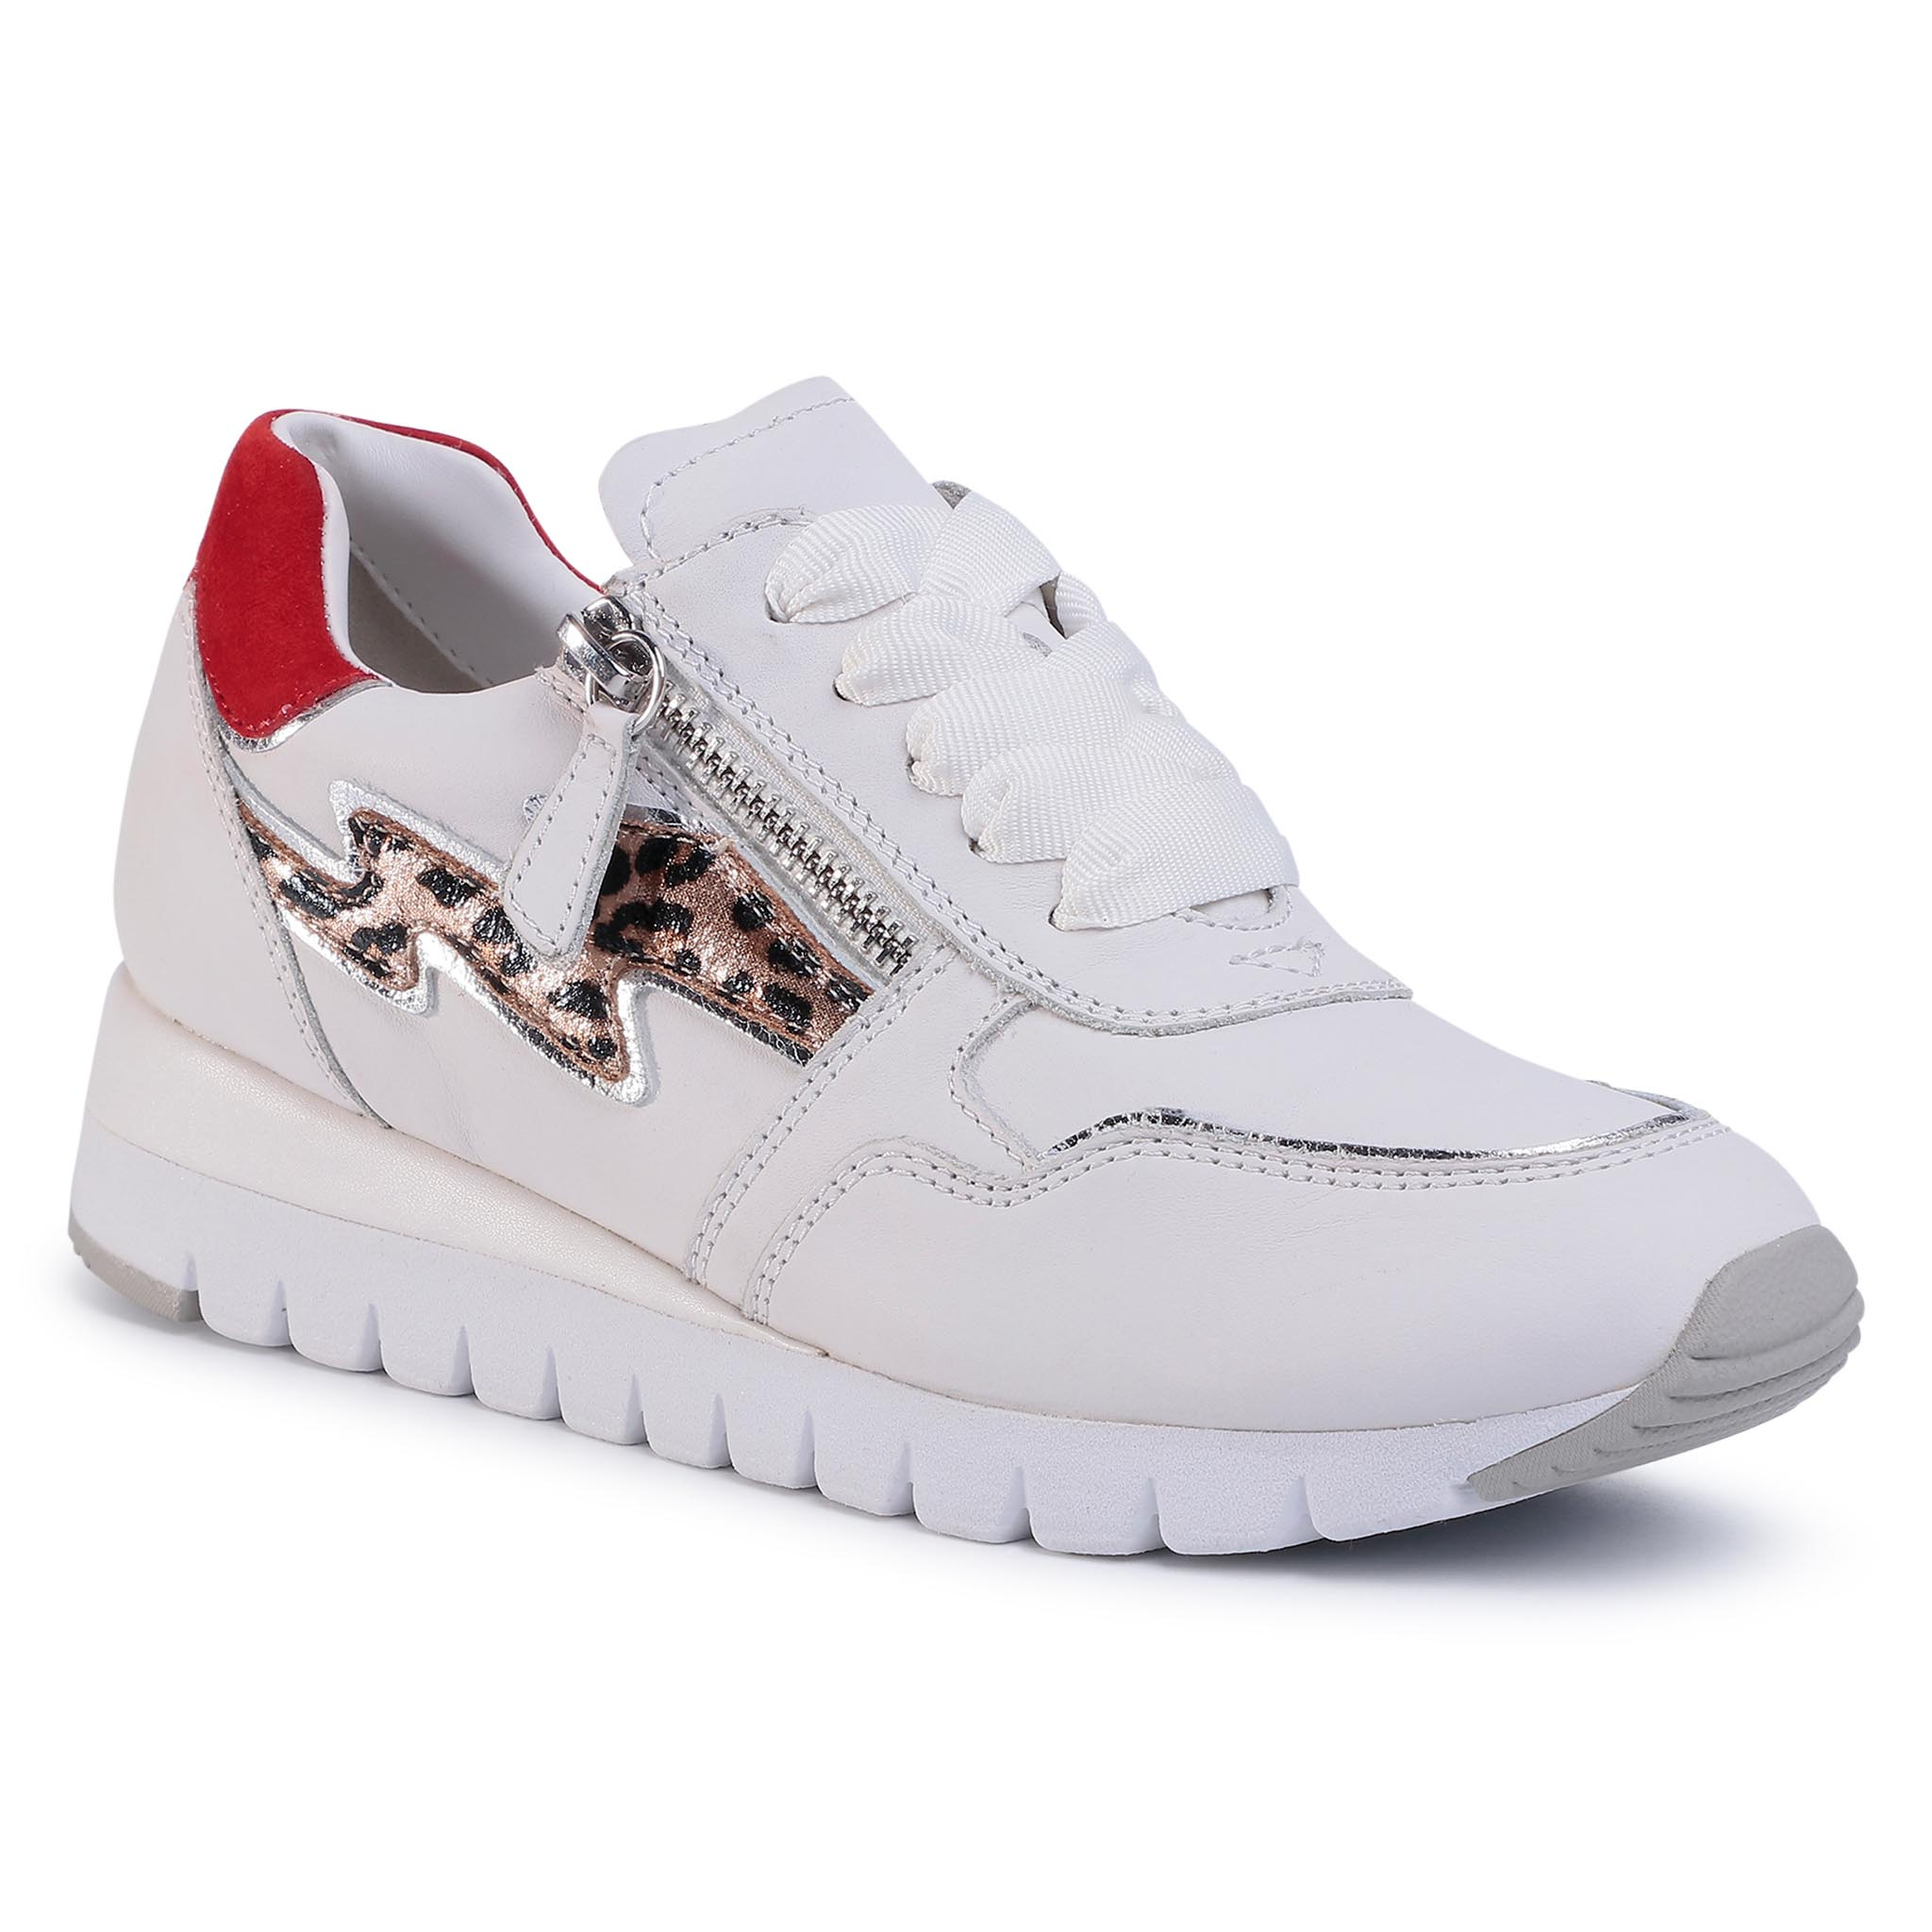 Image of Sneakers CAPRICE - 9-23700-24 White Comb 197